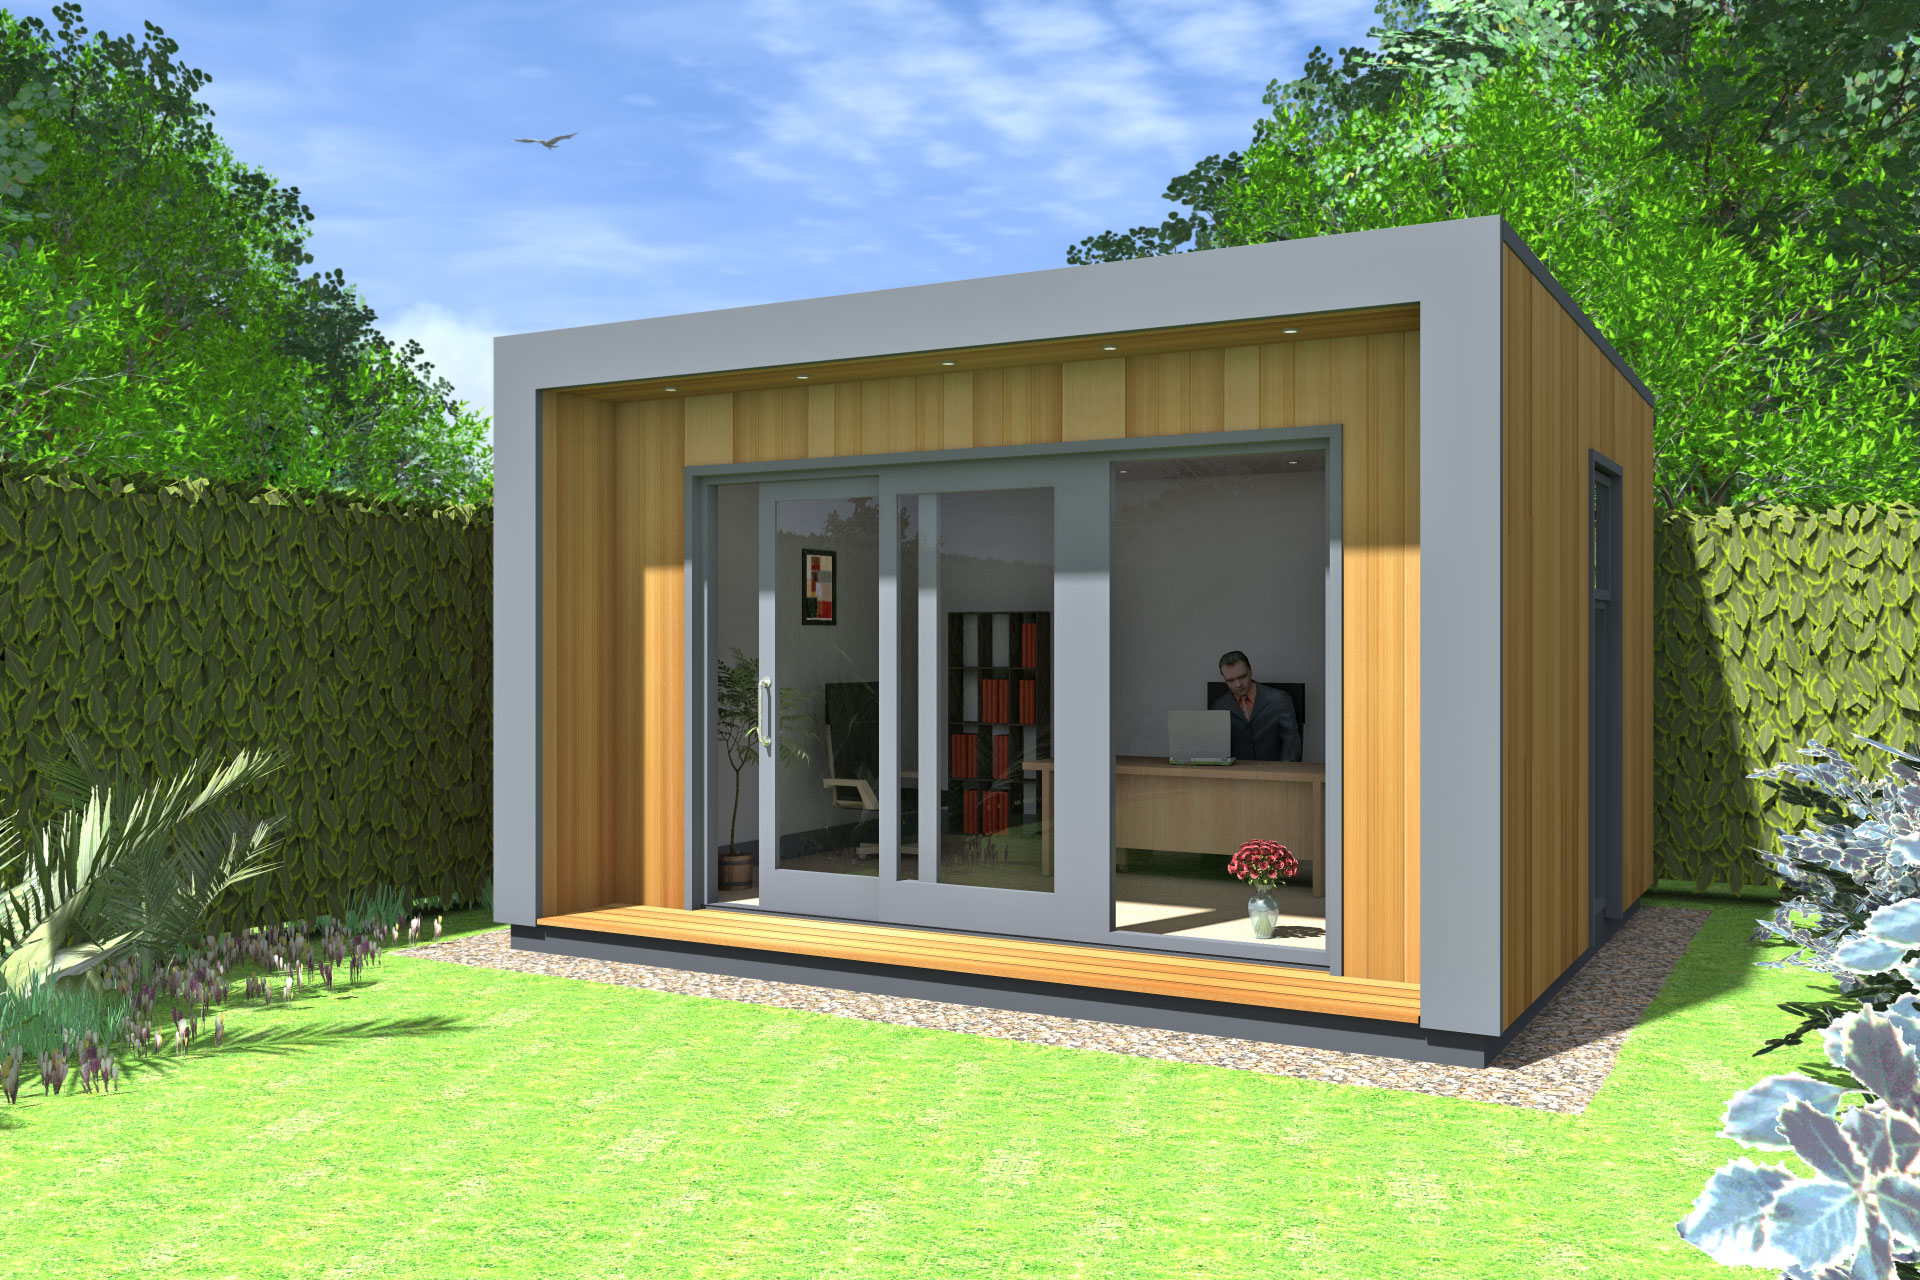 Ecos cubeco garden office ideas gallery ecos ireland for Garden house office